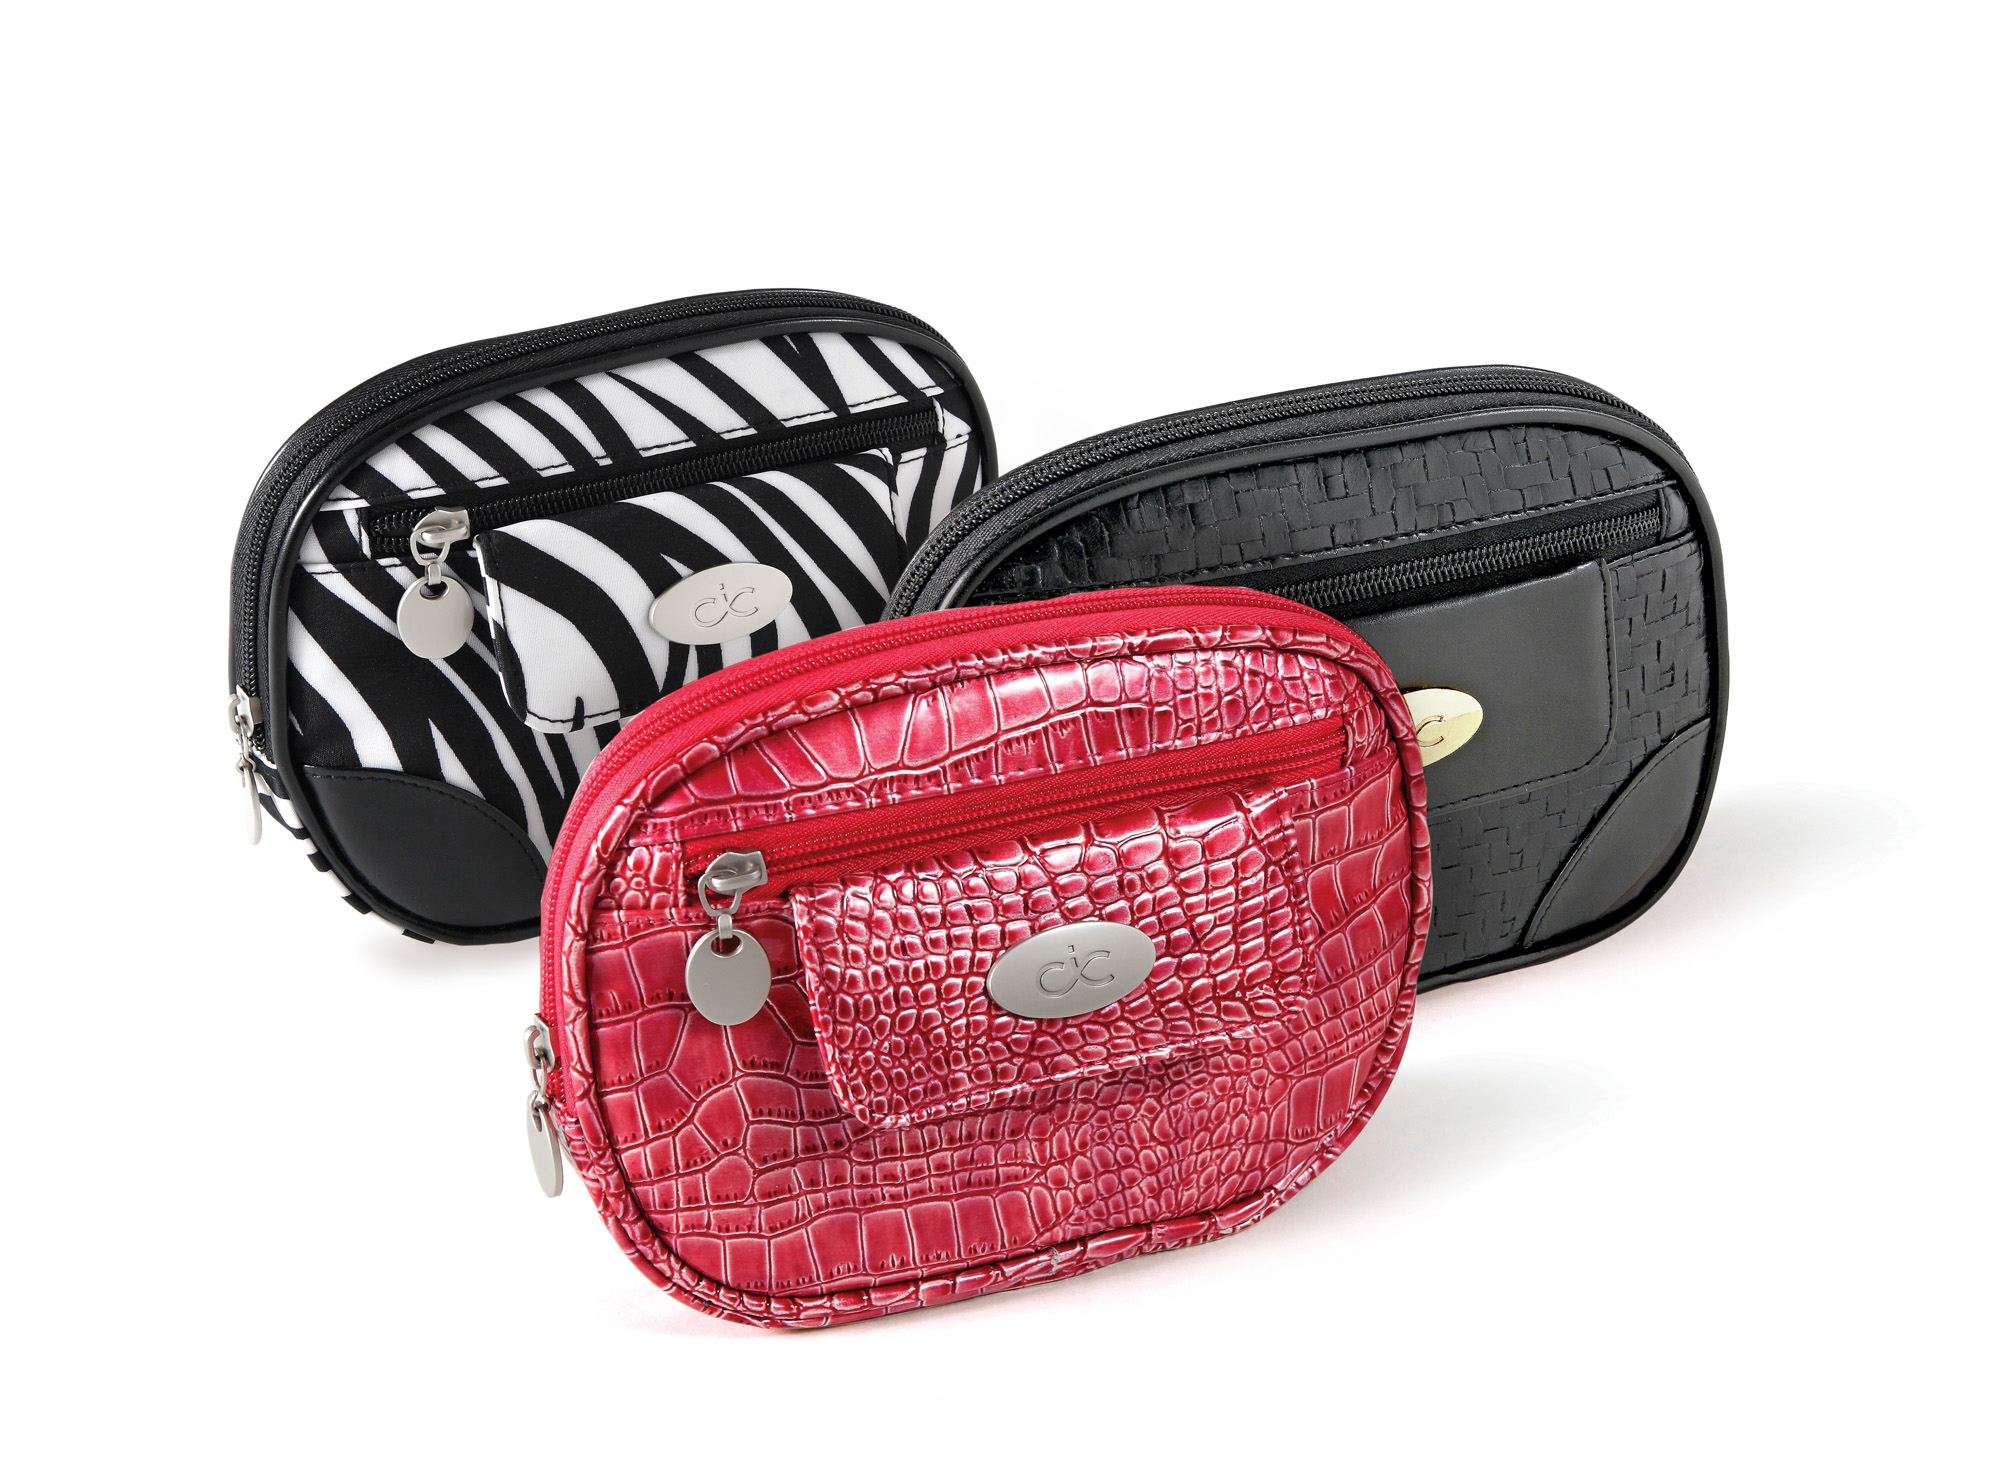 Cool-It Caddy Introduces Two Keep-It-Cool Bags for Holiday Gift Giving